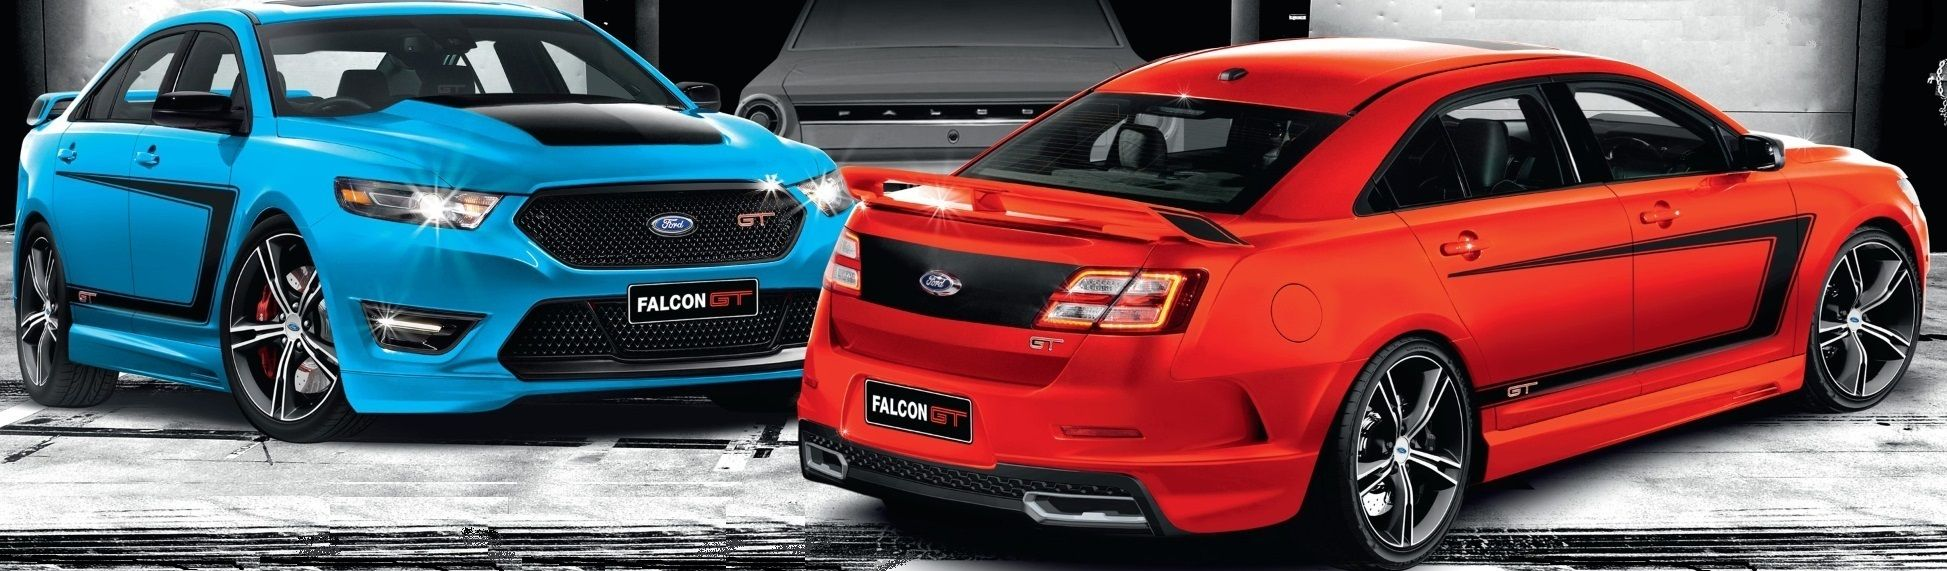 2014 ford falcon  Australian cars  Pinterest  Falcons Ford